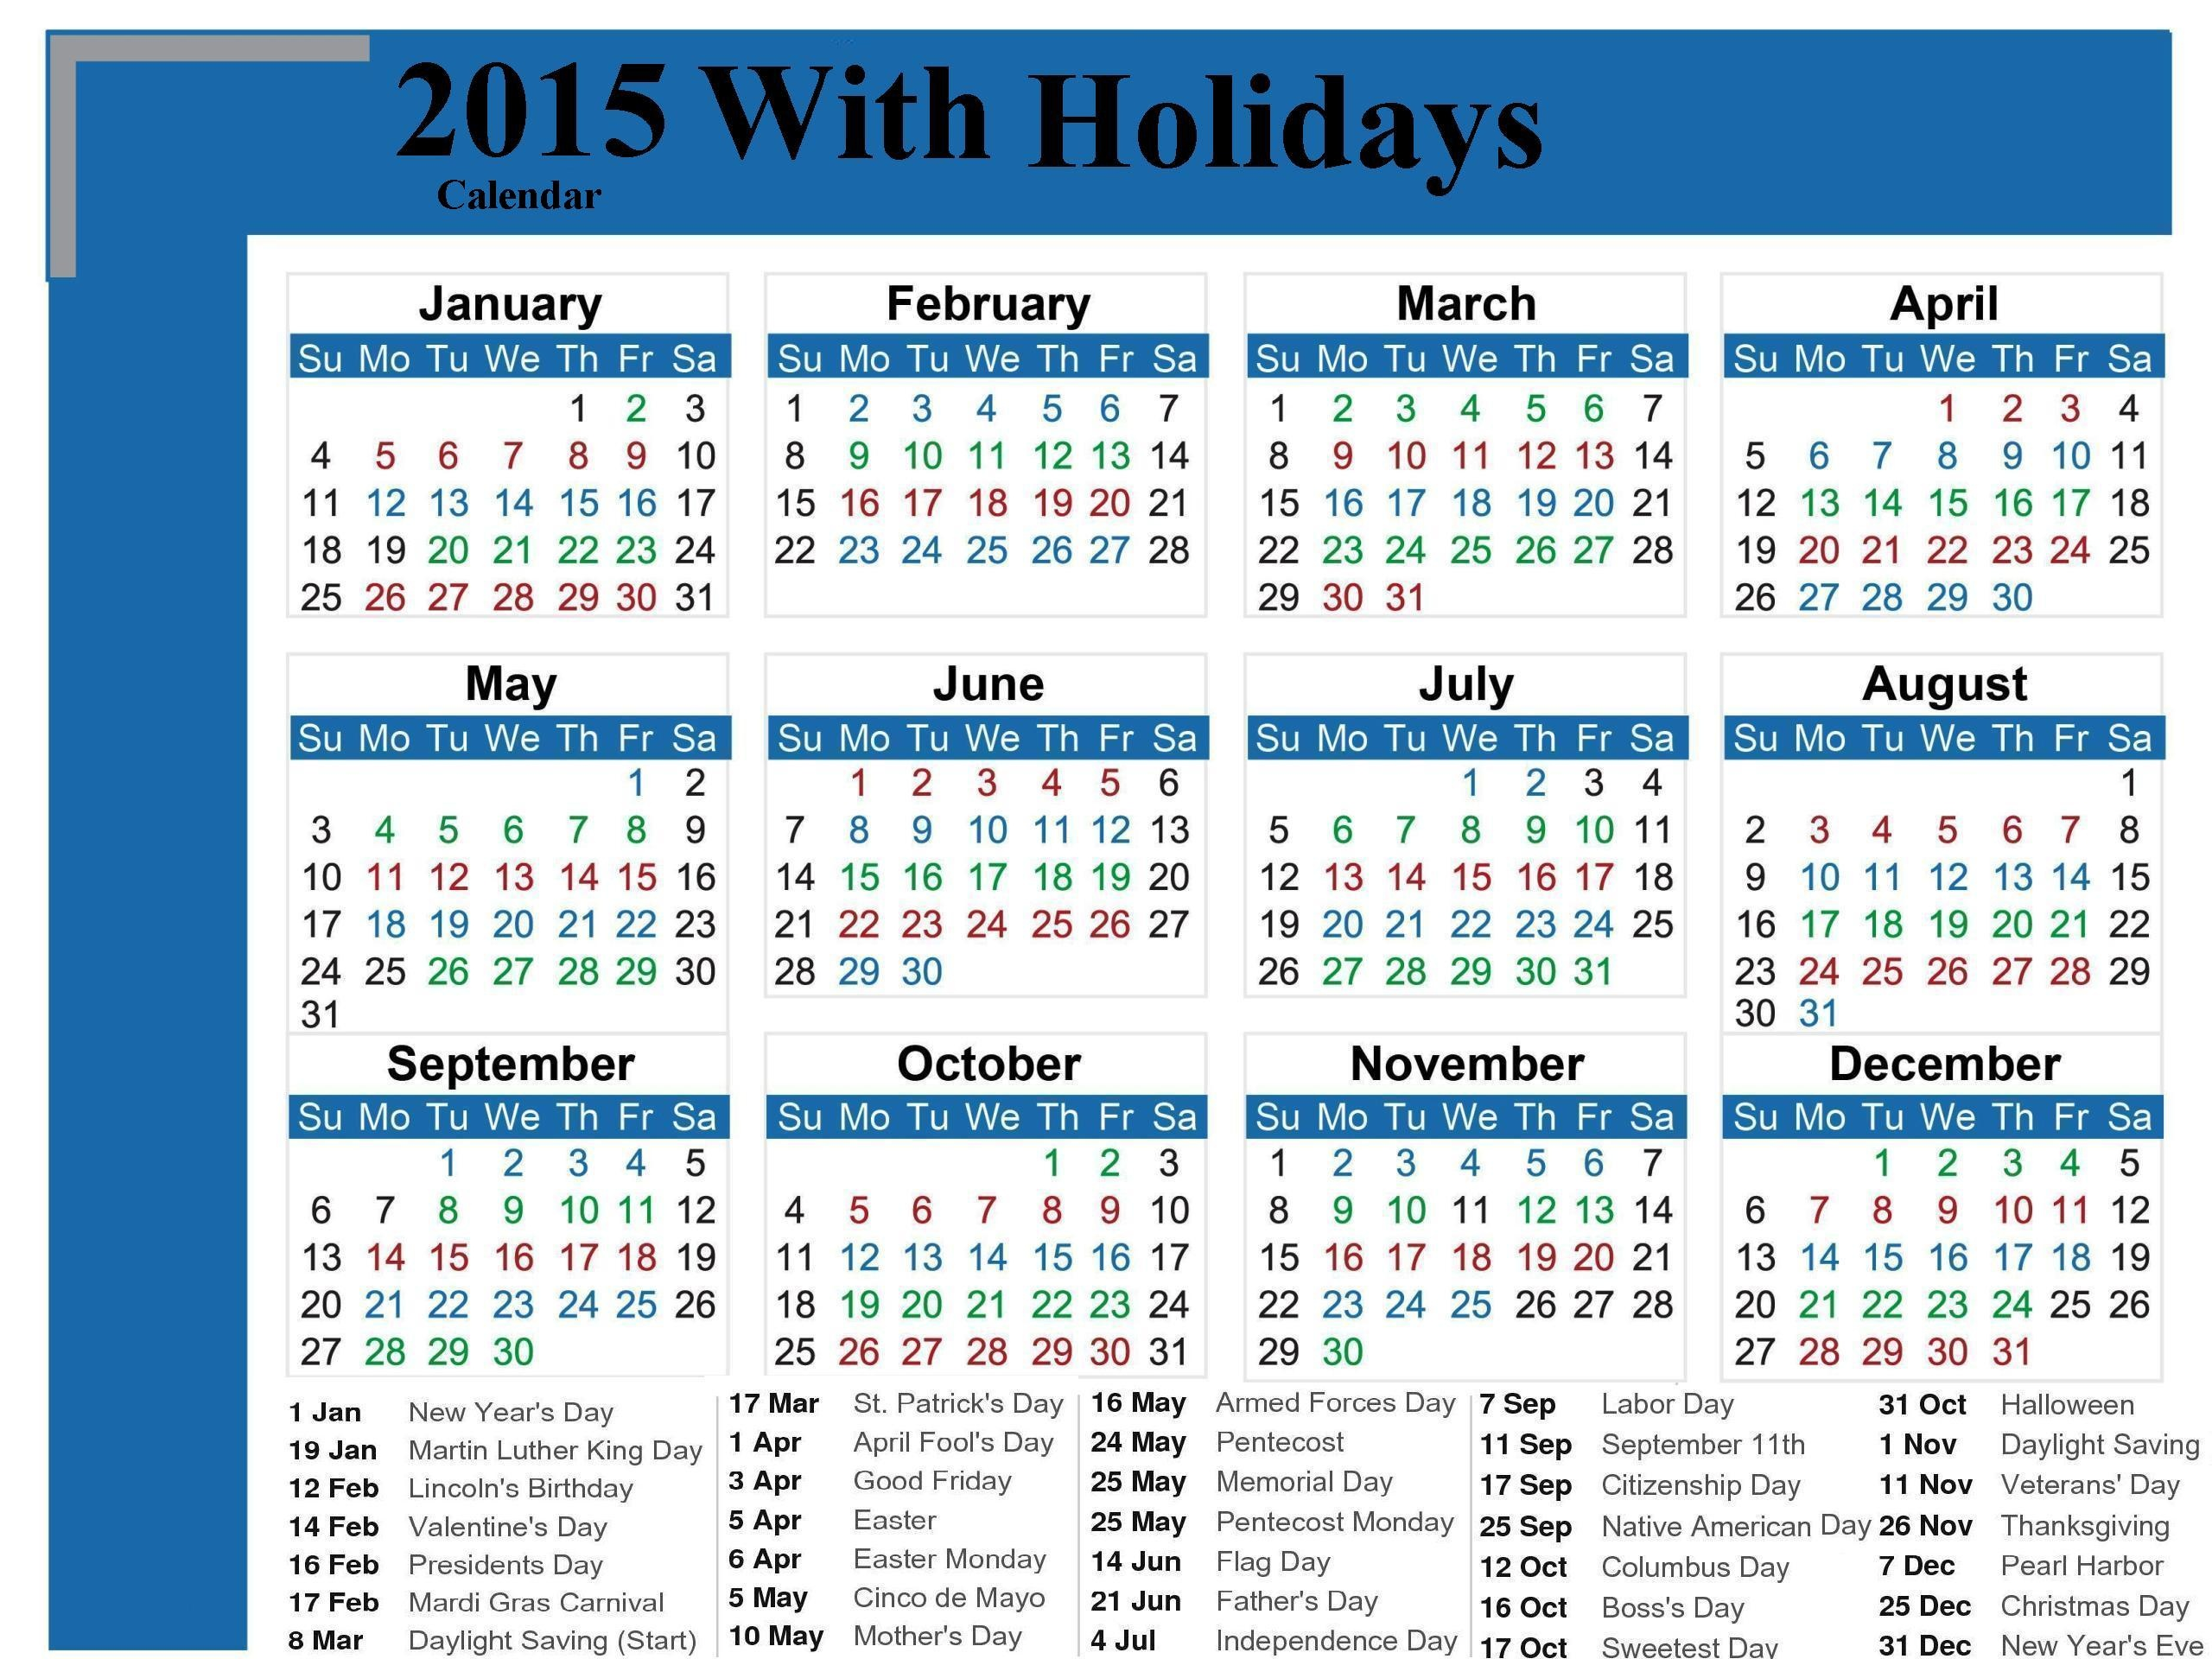 2015-Calendar-With-Holidays-HD-Wallpaper